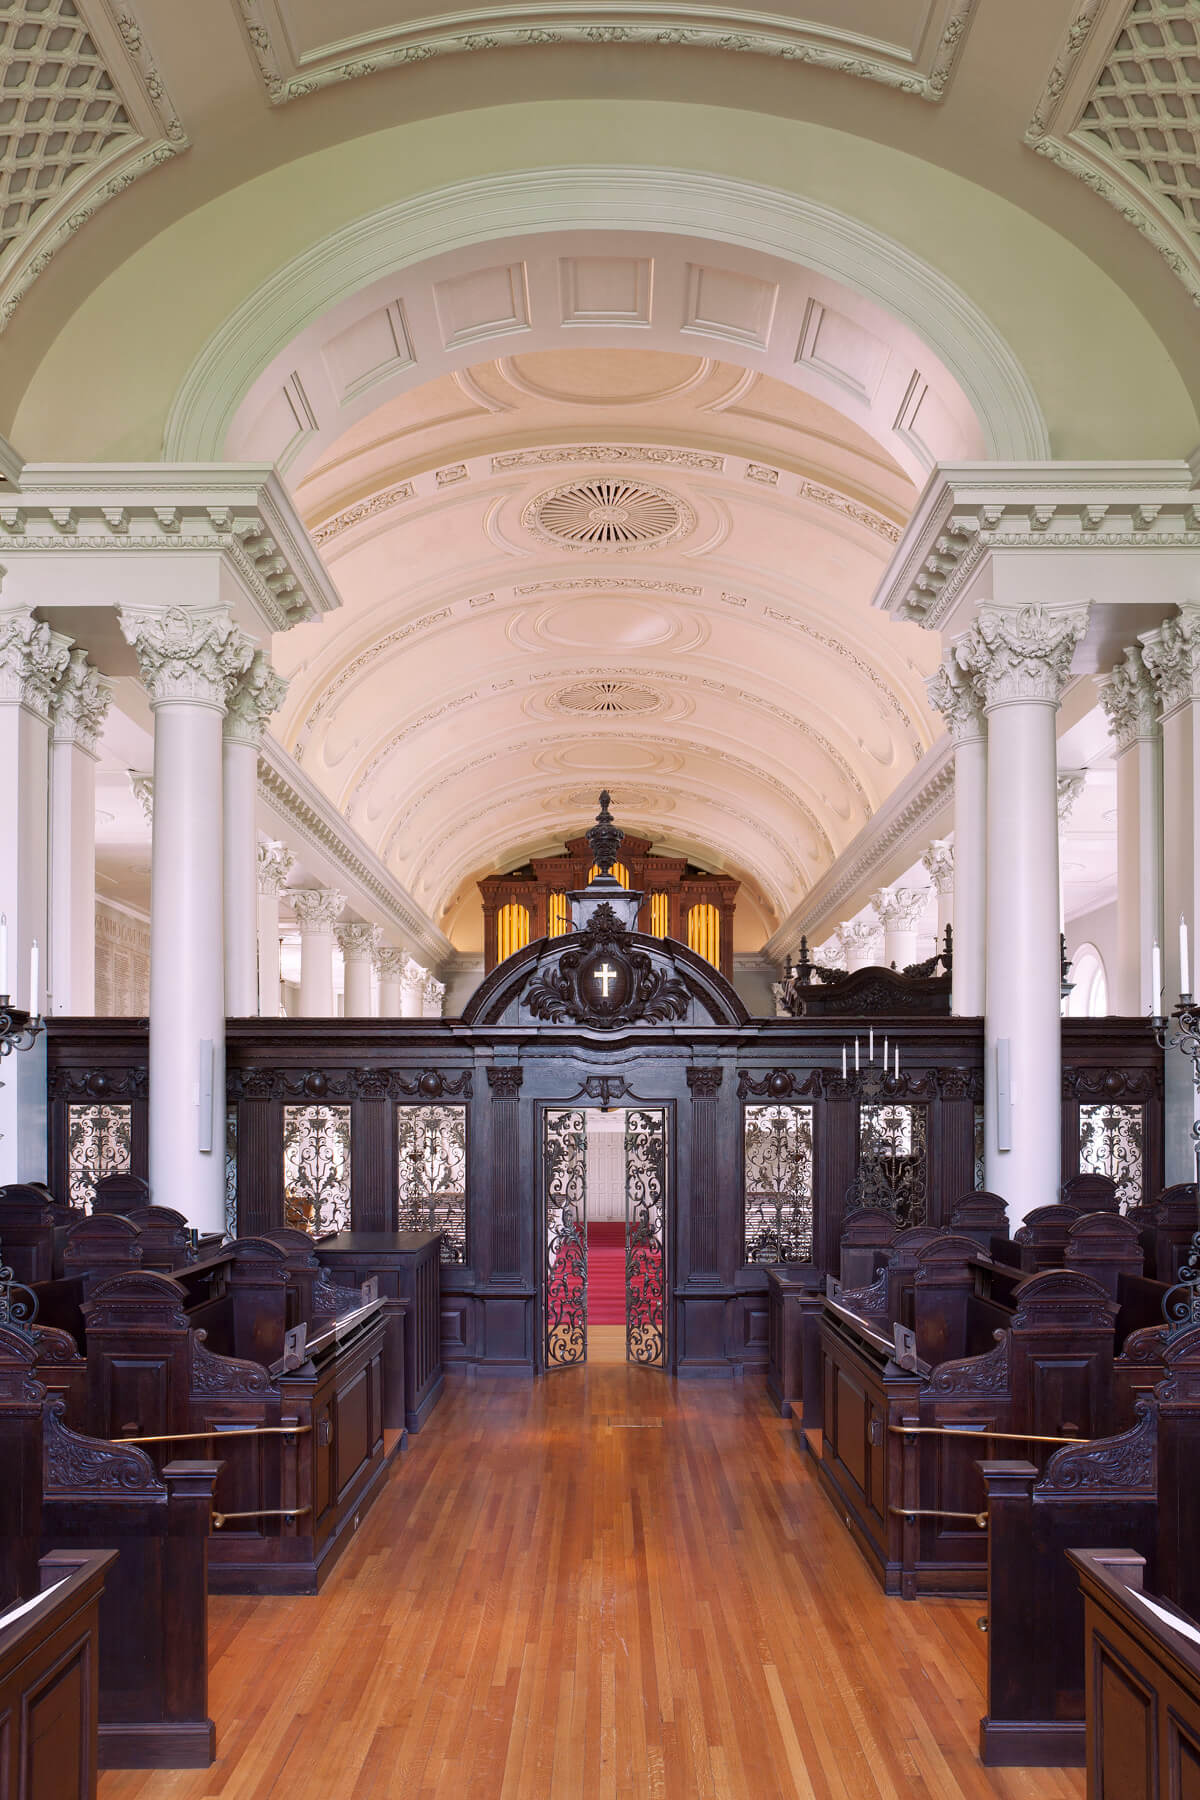 View from the chapel with dark wooden pews onto the wooden and metal gate, framed by columns.